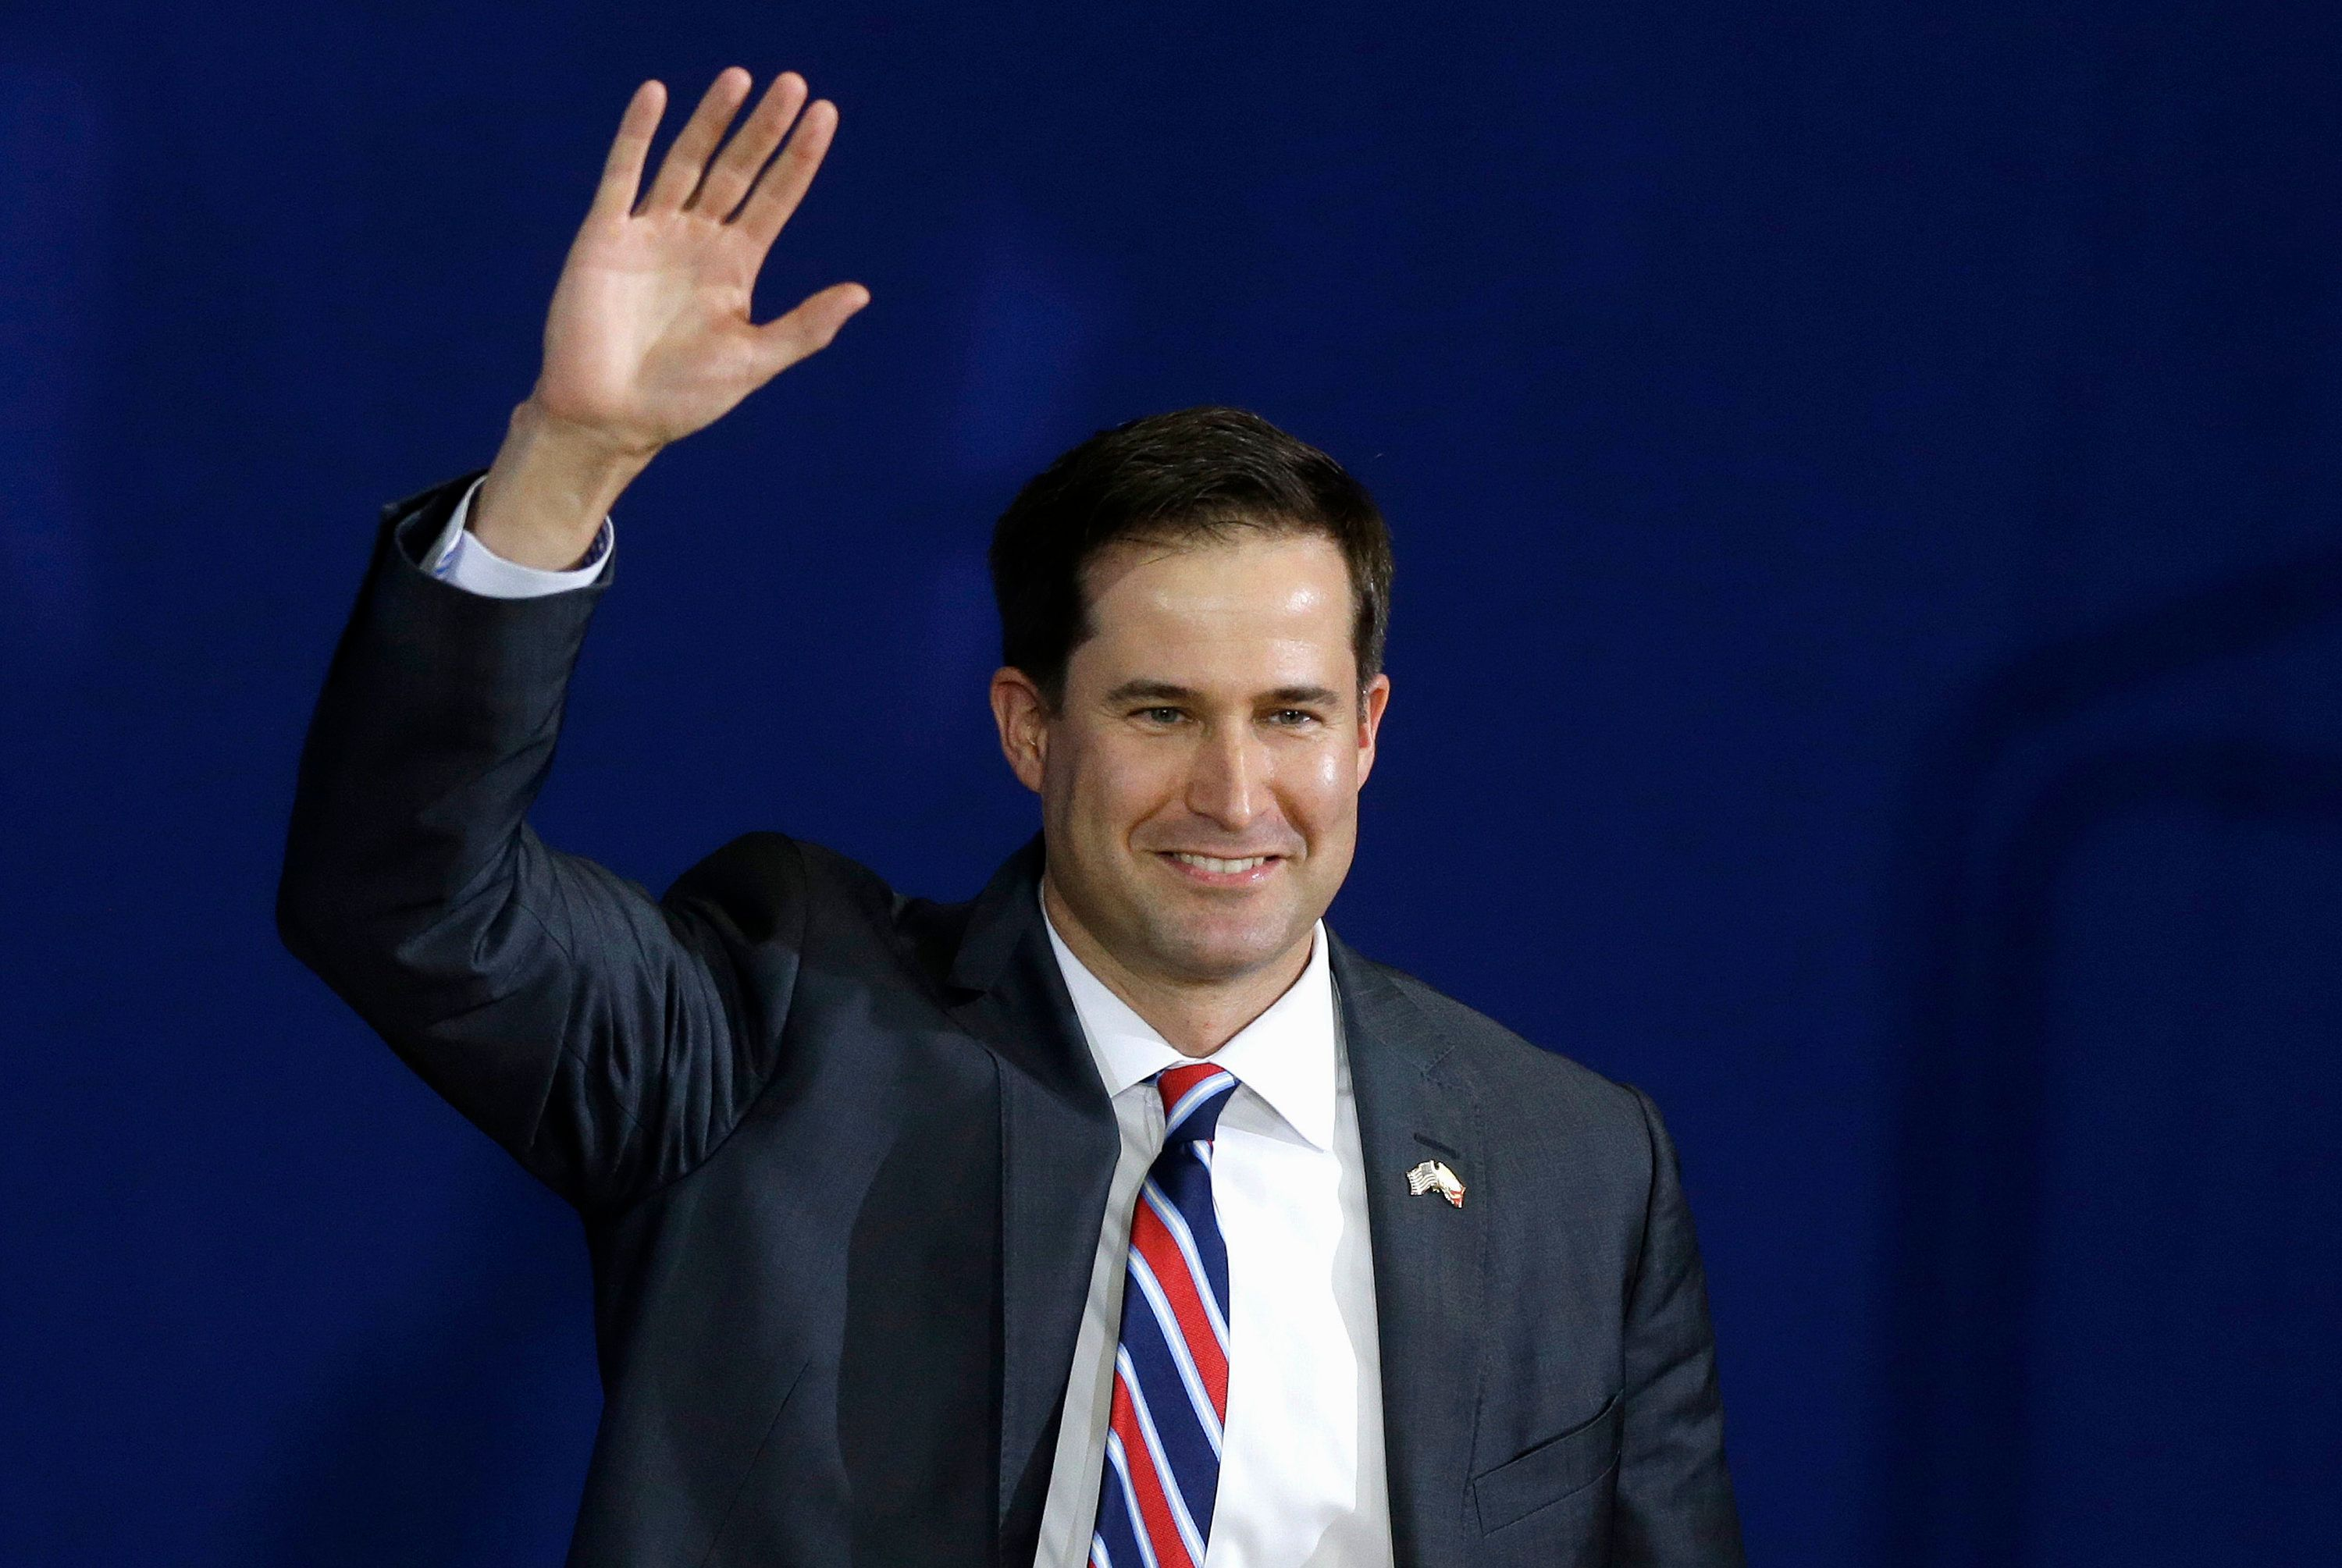 FILE - In this Oct. 29, 2014 file photo, then-Massachusetts Democratic Congressional candidate, now Rep.-elect Seth Moulton, waves as he arrives at a campaign event in Lynn, Mass. (AP Photo/Steven Senne, File)